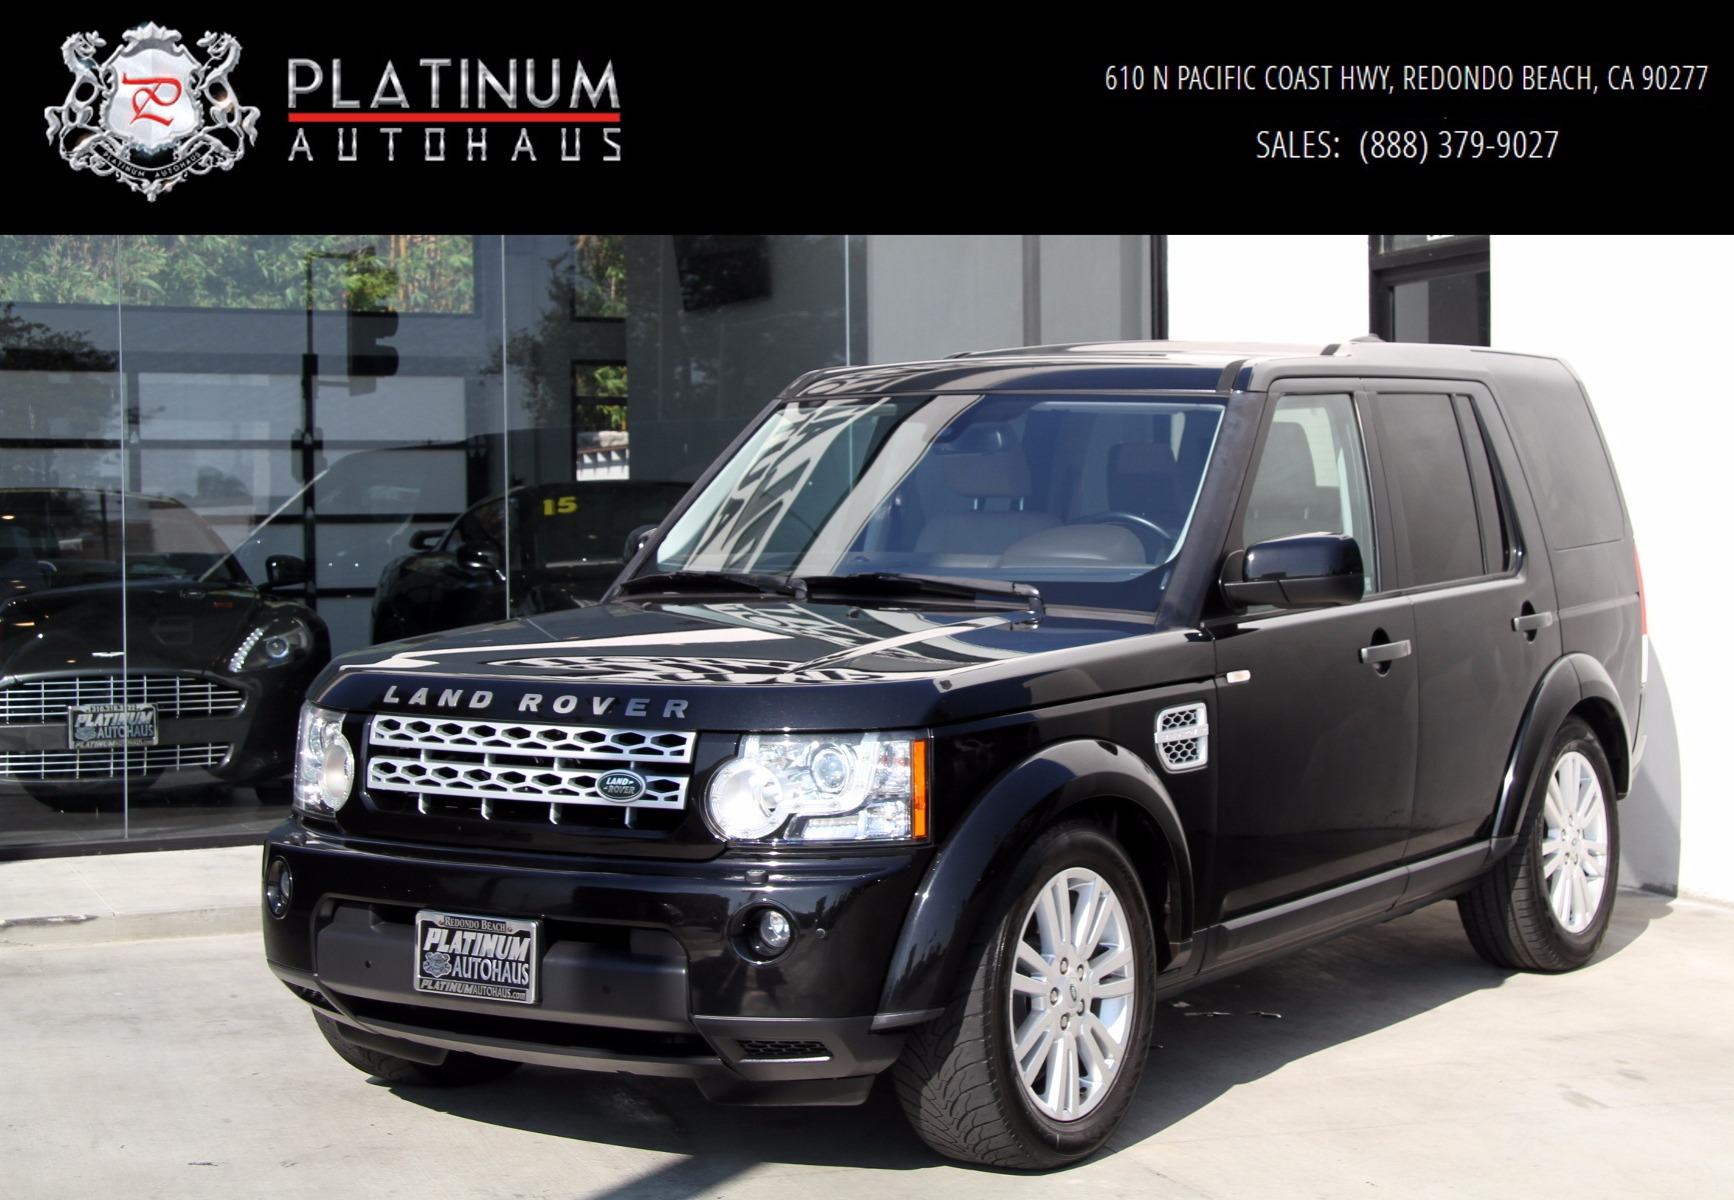 2012 land rover lr4 hse stock 5989 for sale near redondo beach ca ca land rover dealer - Land rover garage near me ...